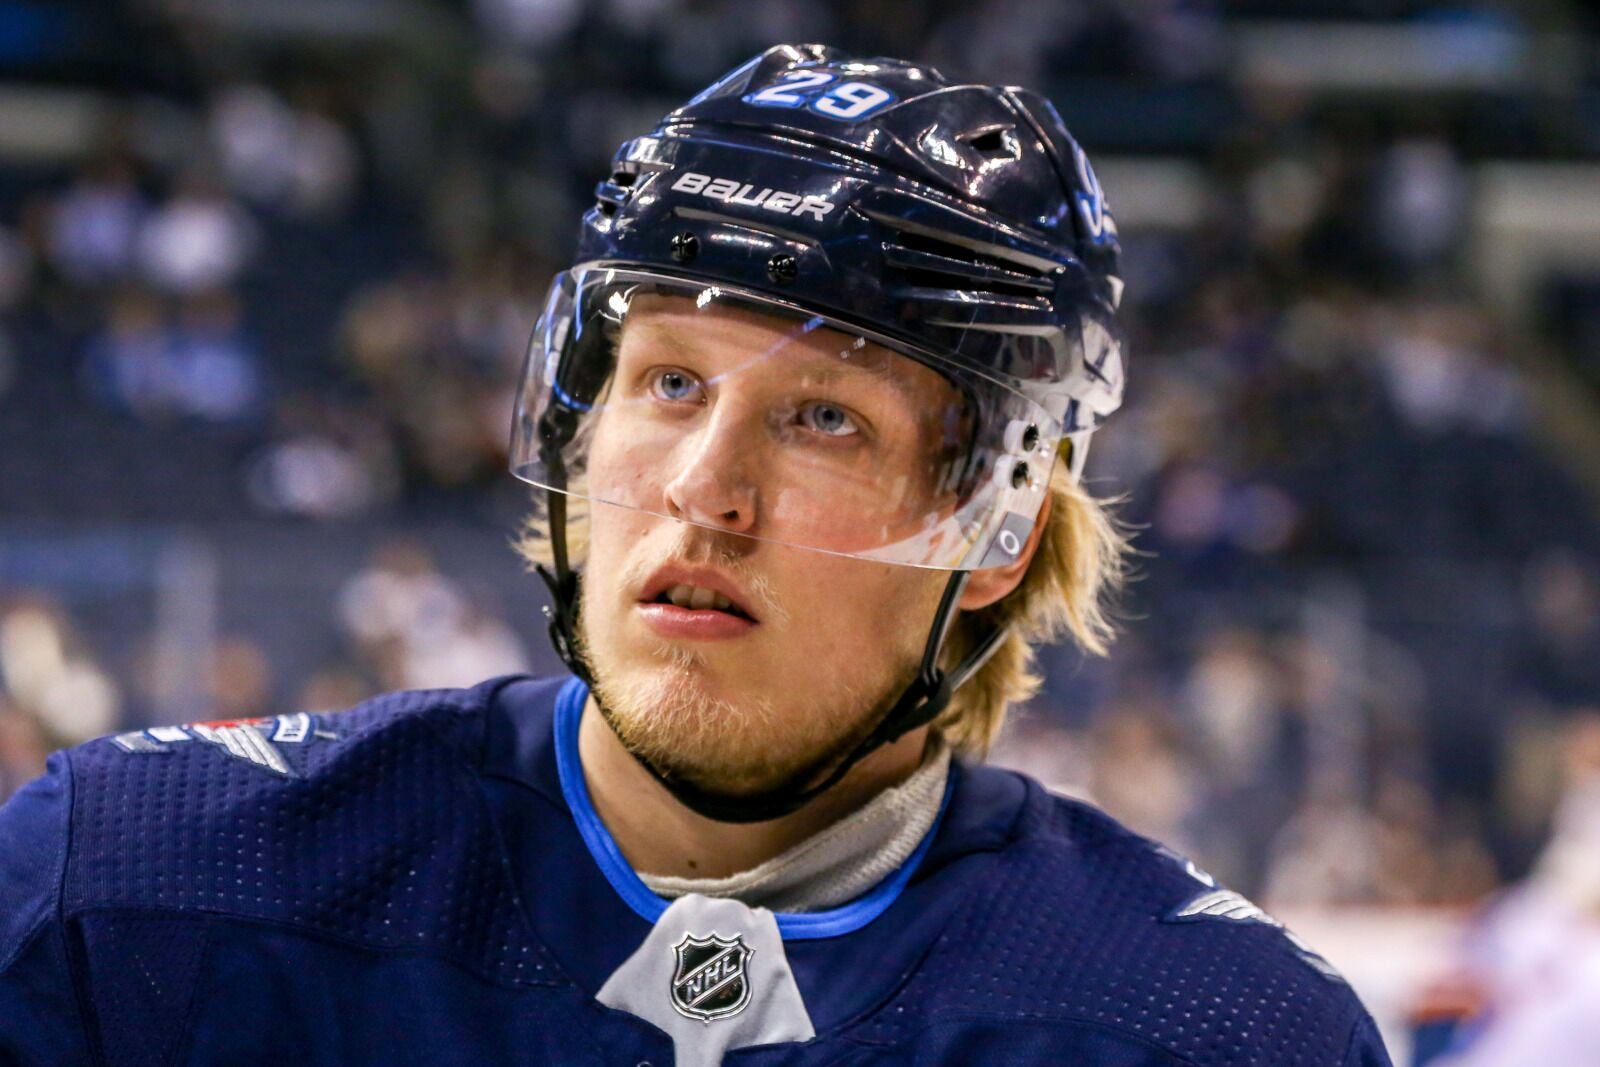 Winnipeg Jets: Patrik Laine's comments add fuel to the fire